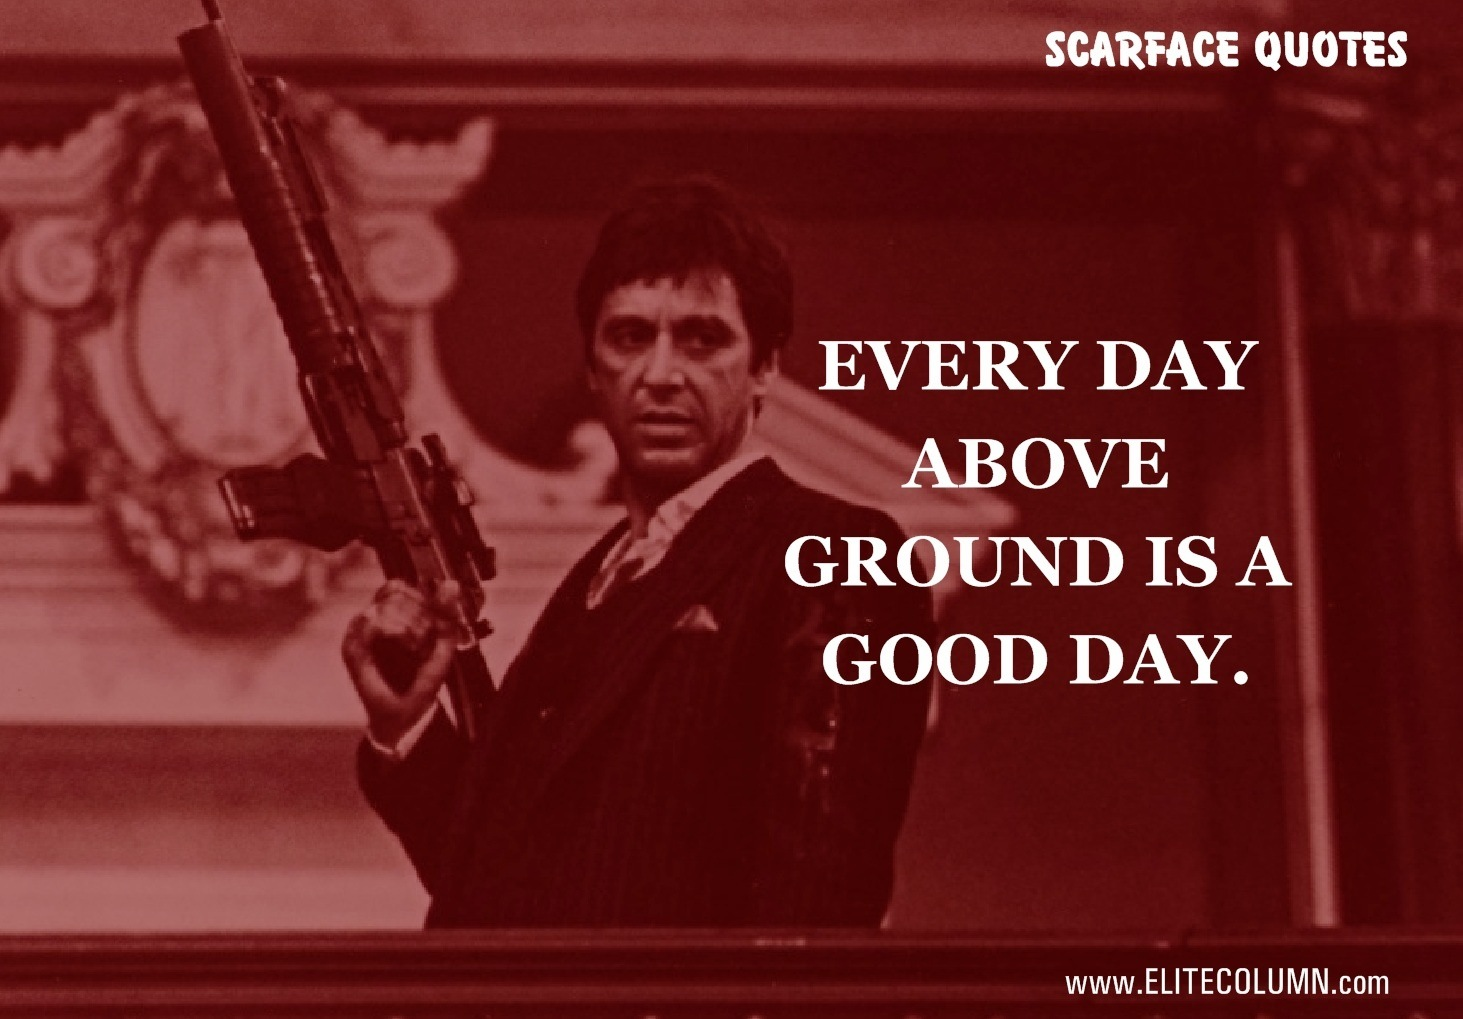 Scarface Quotes What are the best lines from Scarface?   Quora Scarface Quotes